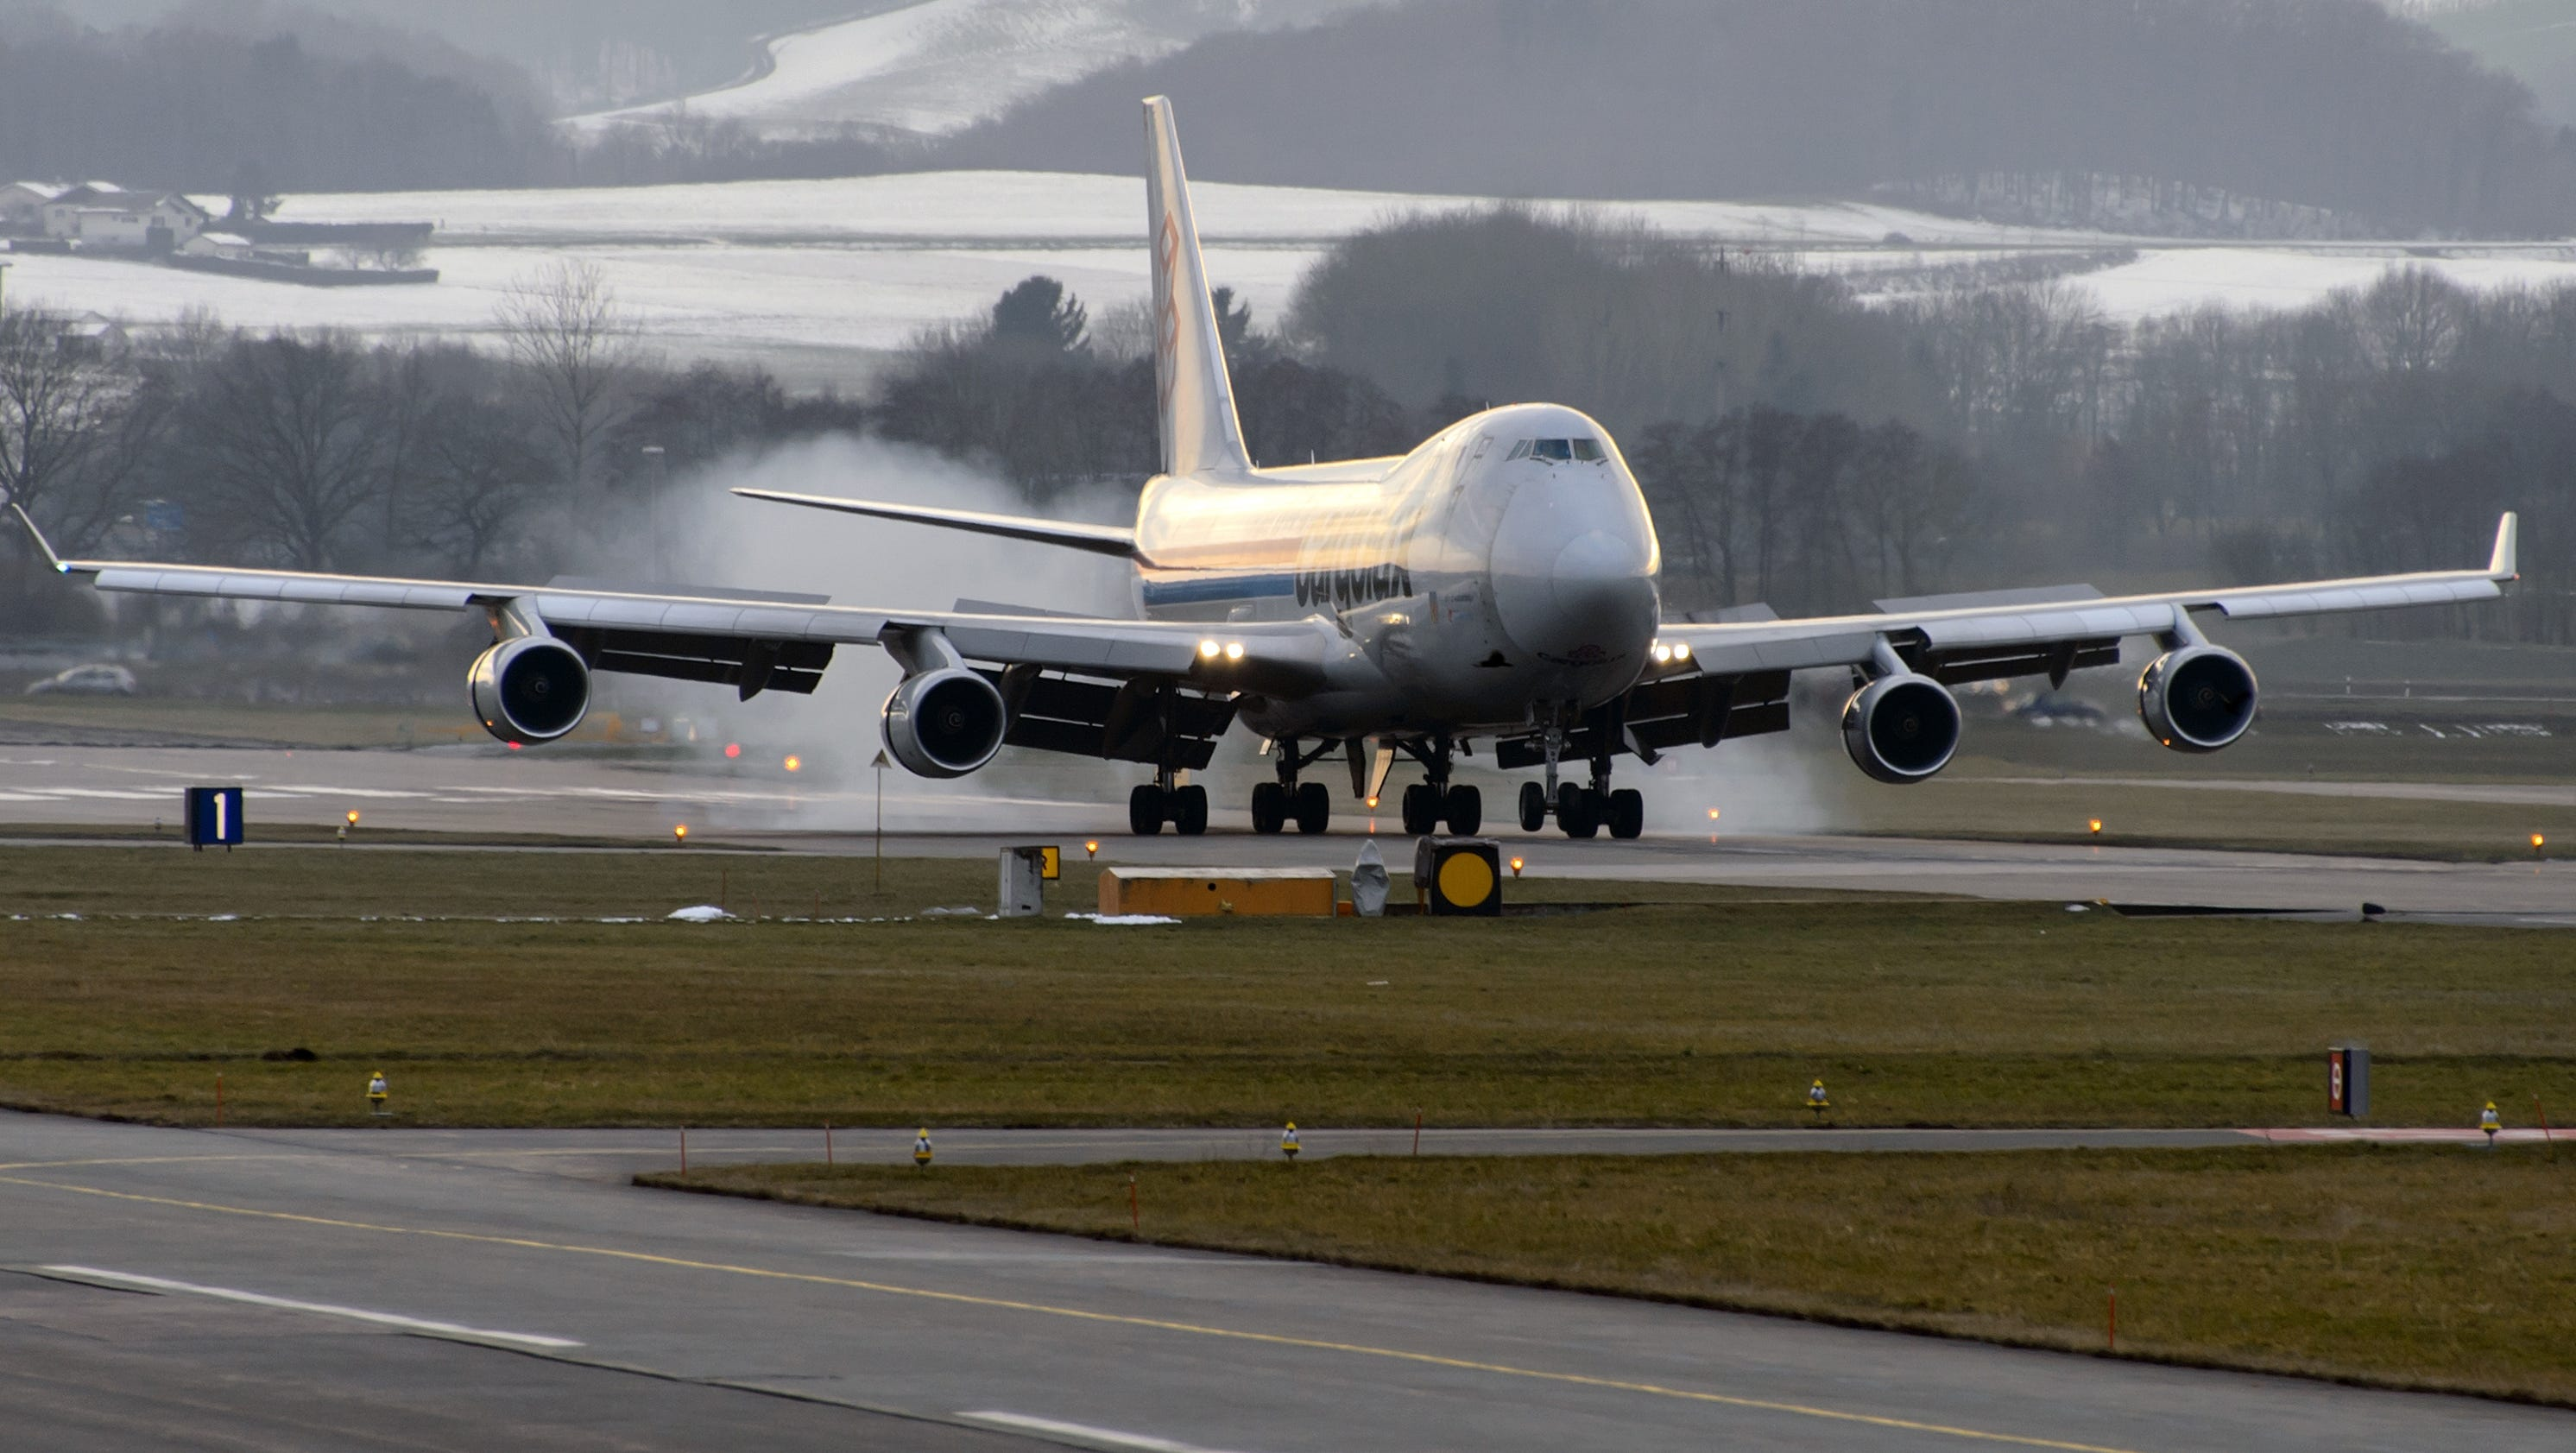 what is the weight of a 747 airplane